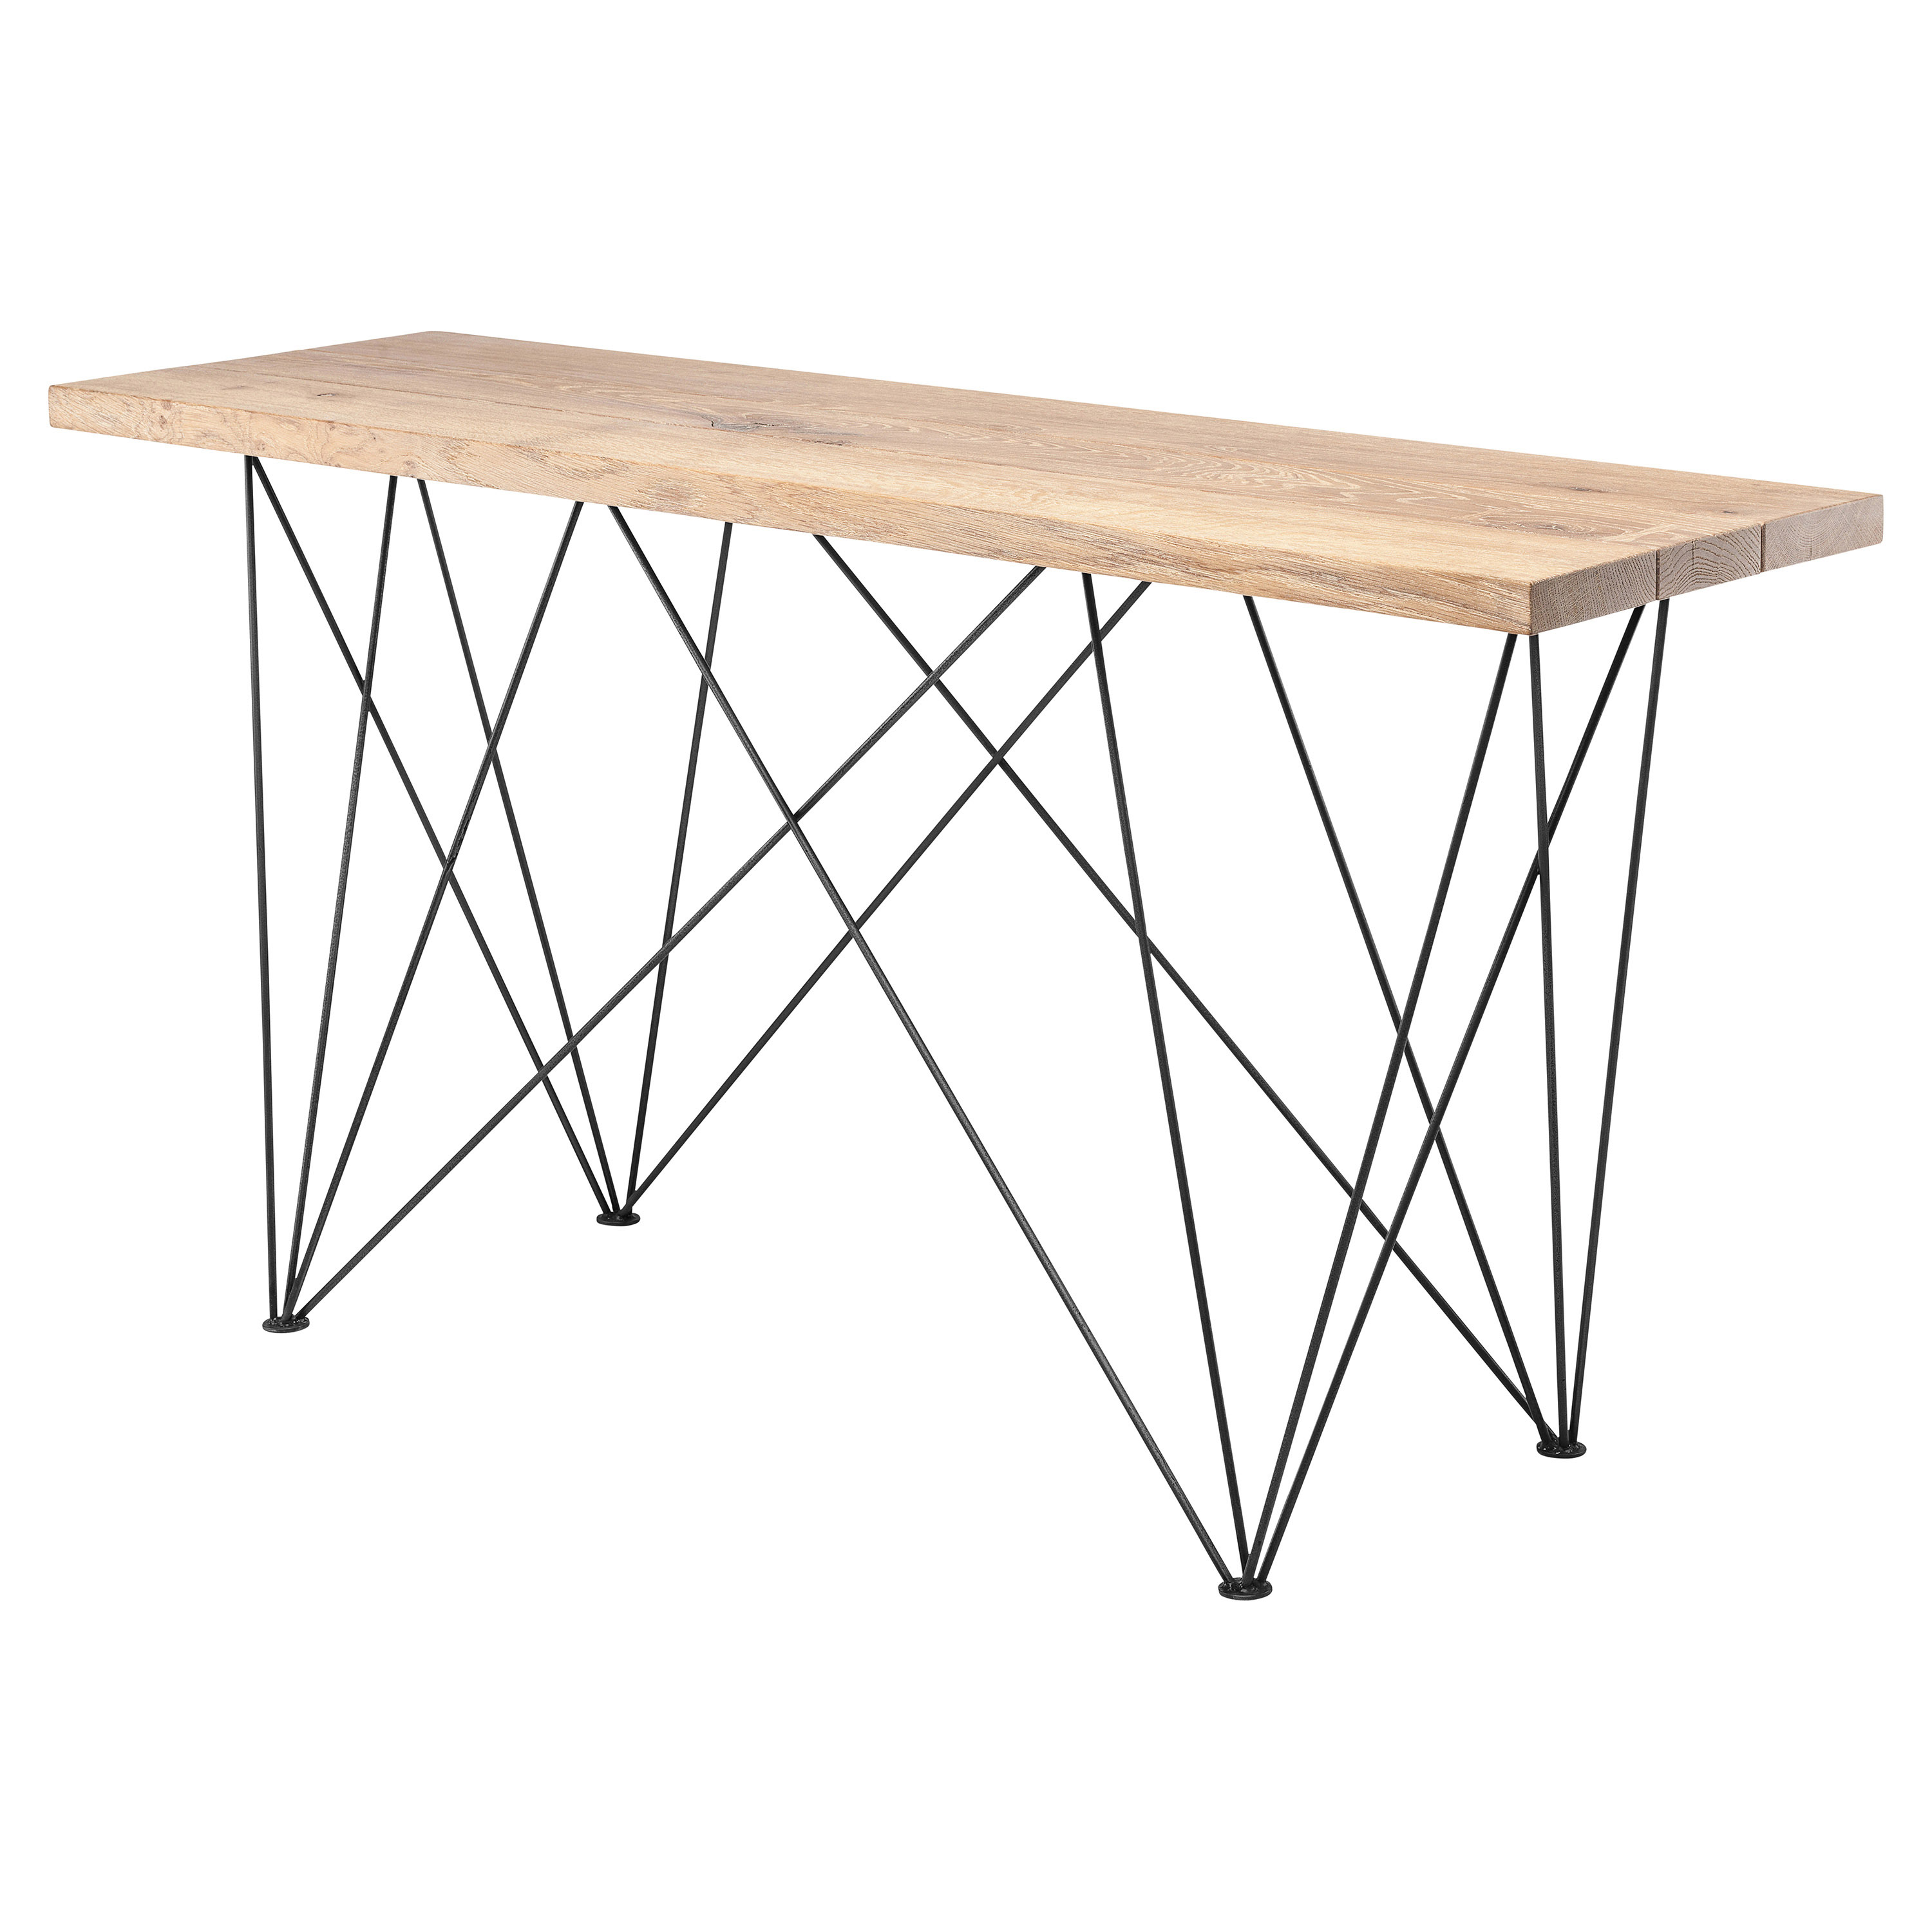 Bentley Industrial Raw Oak Stainless Steel Leg Console Table